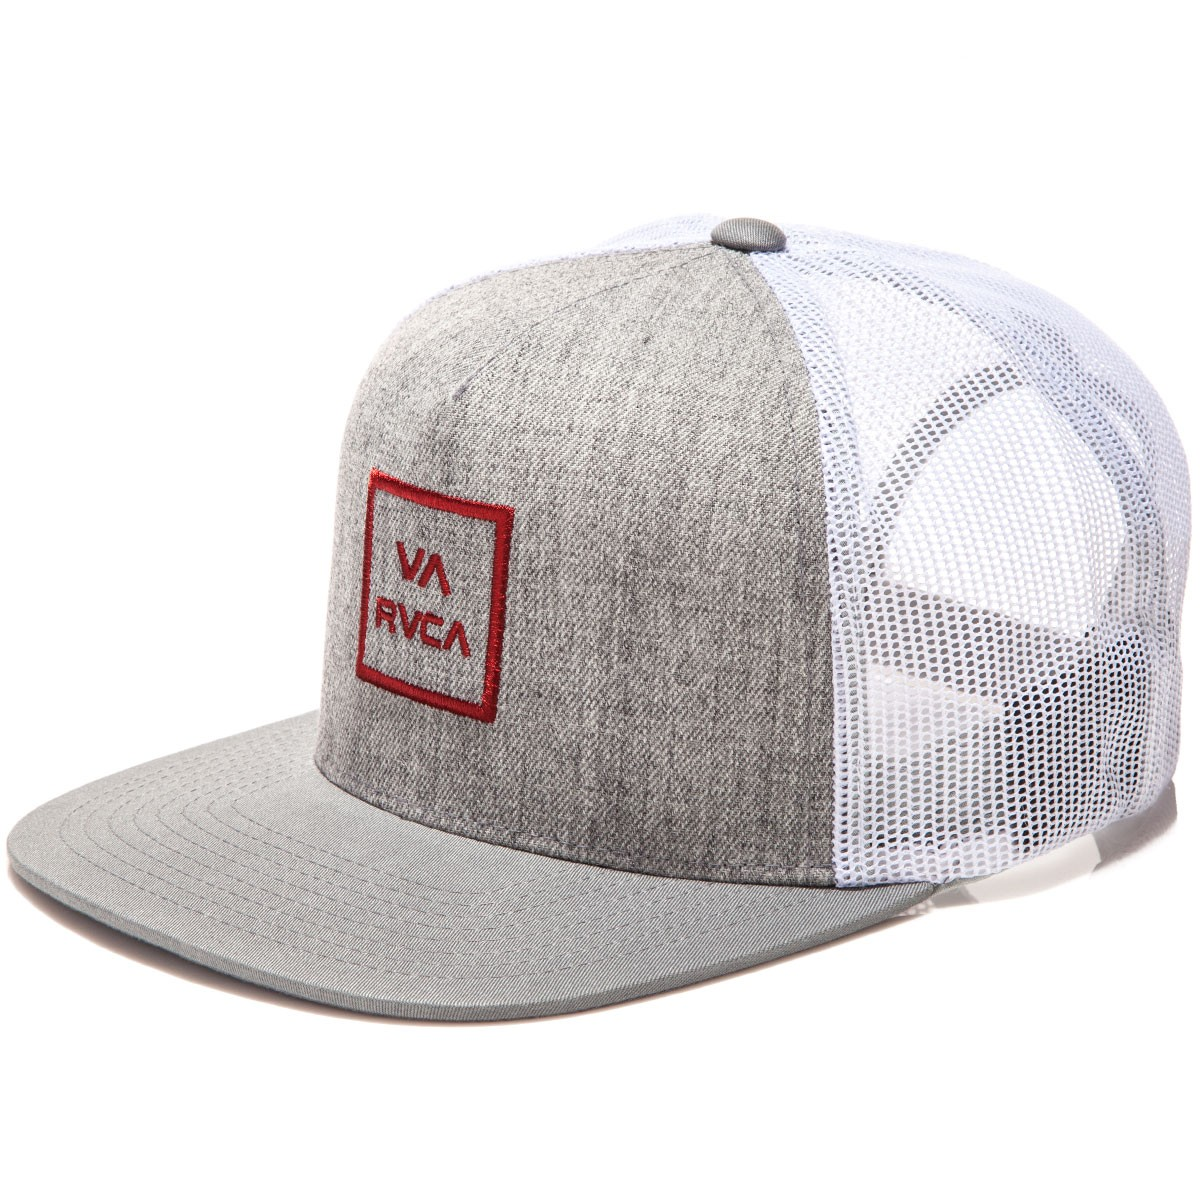 RVCA VA All The Way Trucker Hat - Athletic/Red